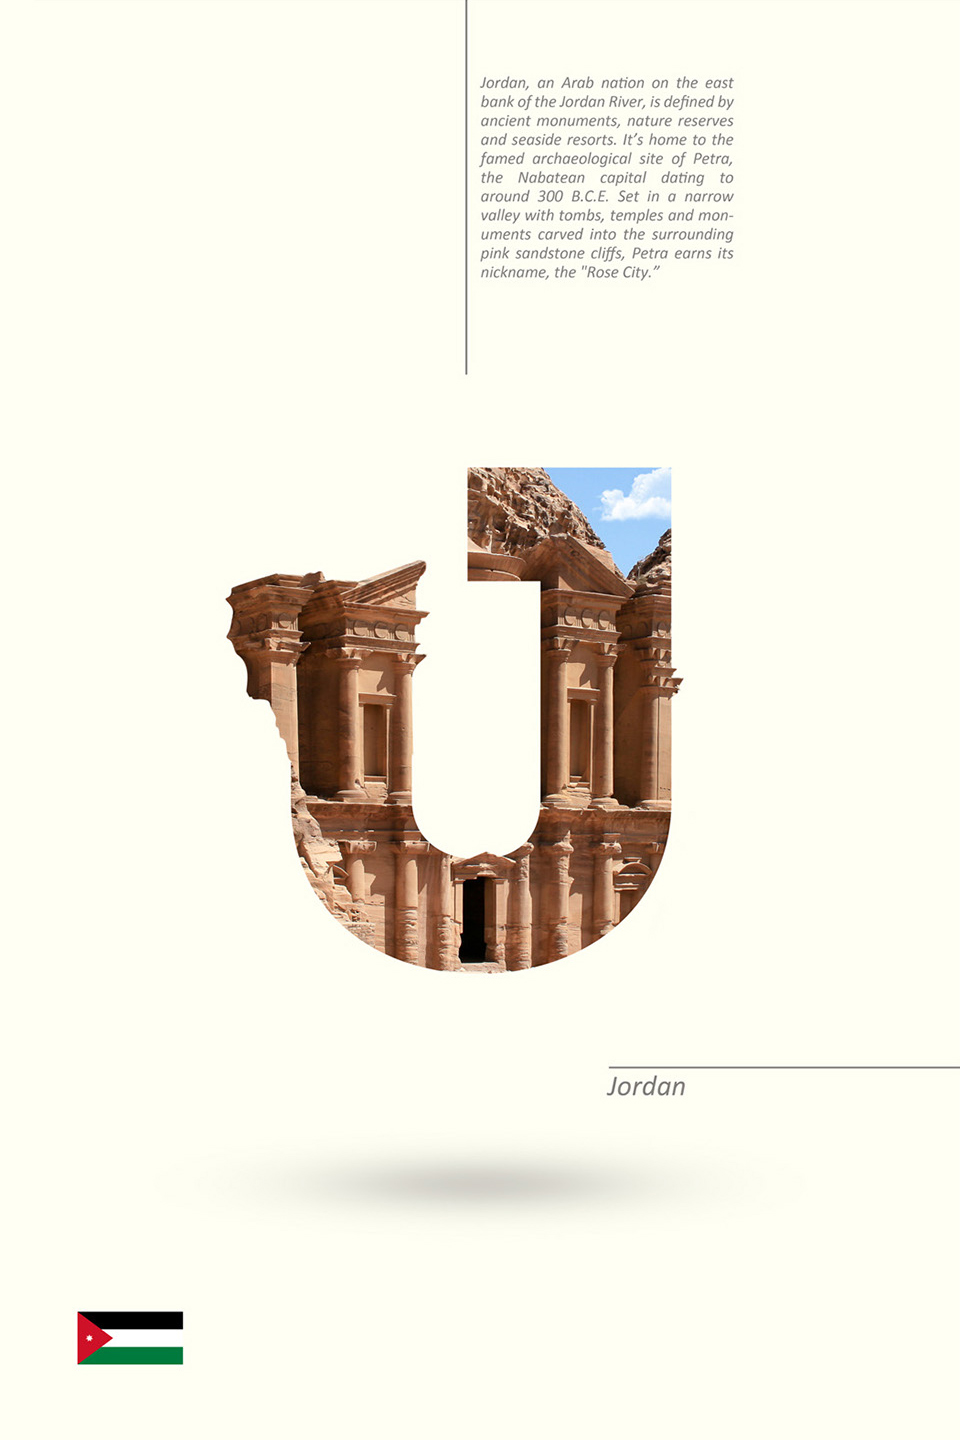 Beautiful Alphabet Series Of Countries And Their Iconic Landmarks - Jordan